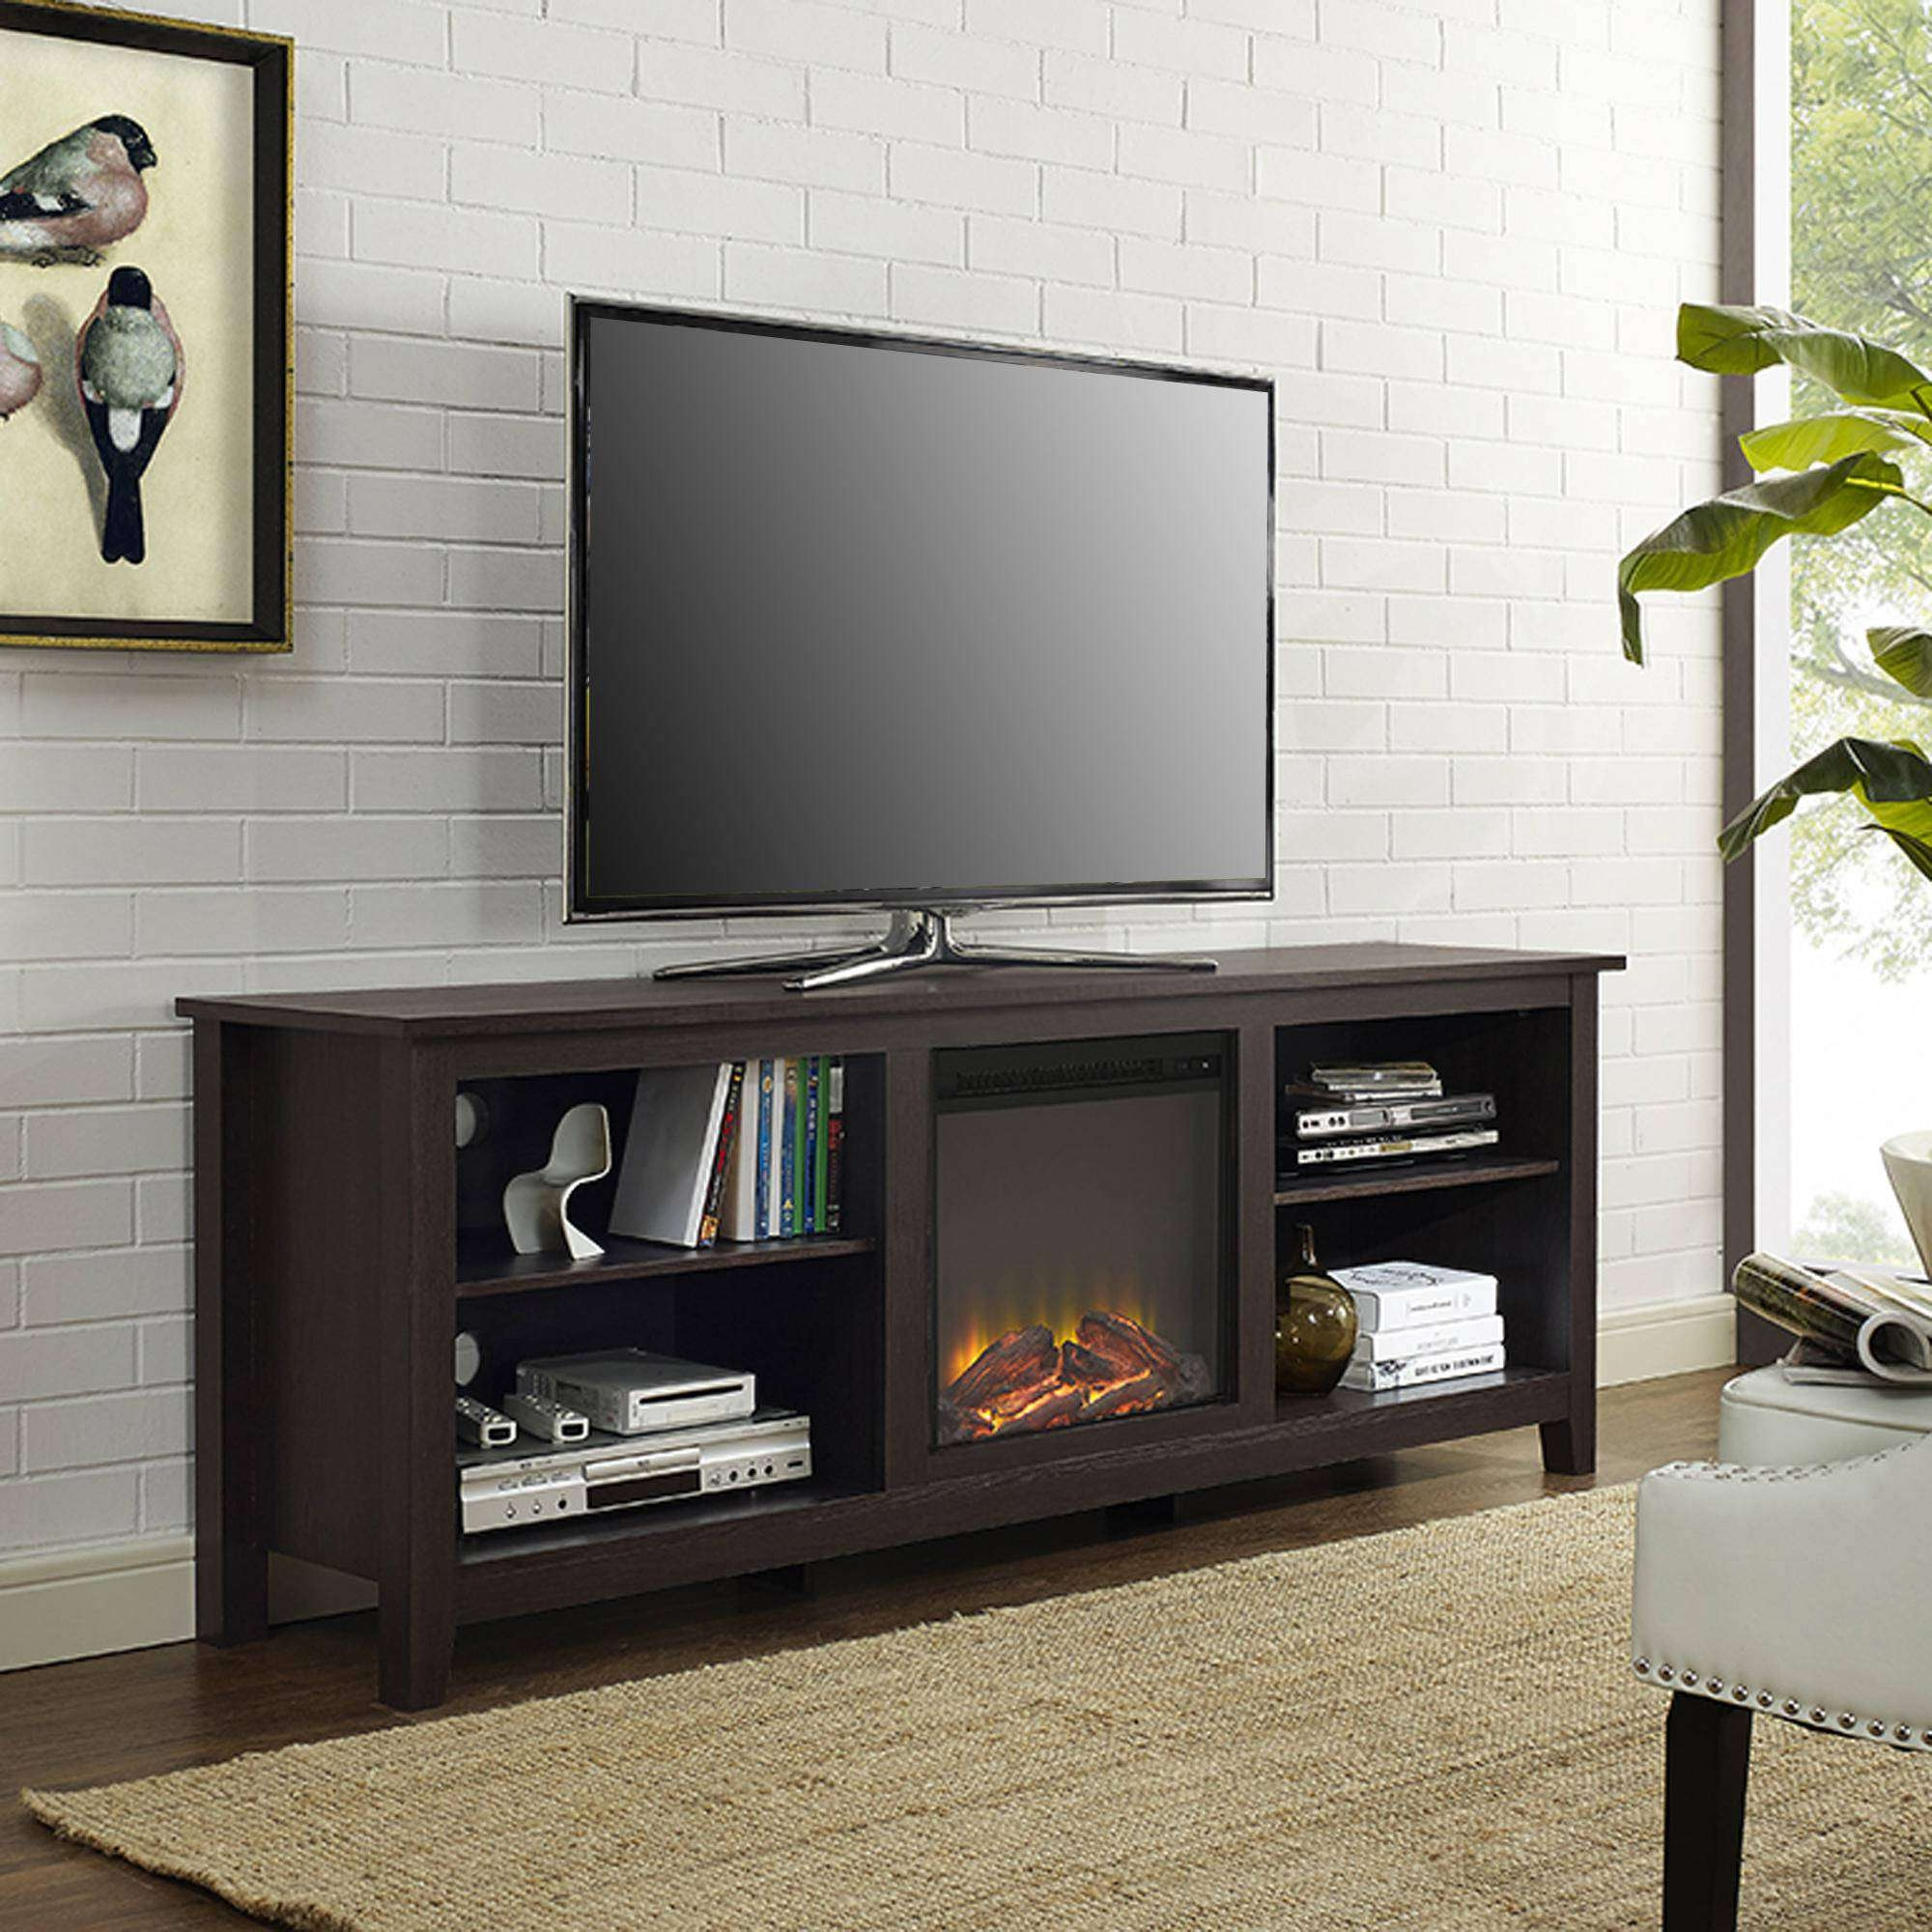 Walker Edison Wood Tv Stand With Fireplace, For Tvs Up To 70 Within Tv Stands For 70 Inch Tvs (View 6 of 20)